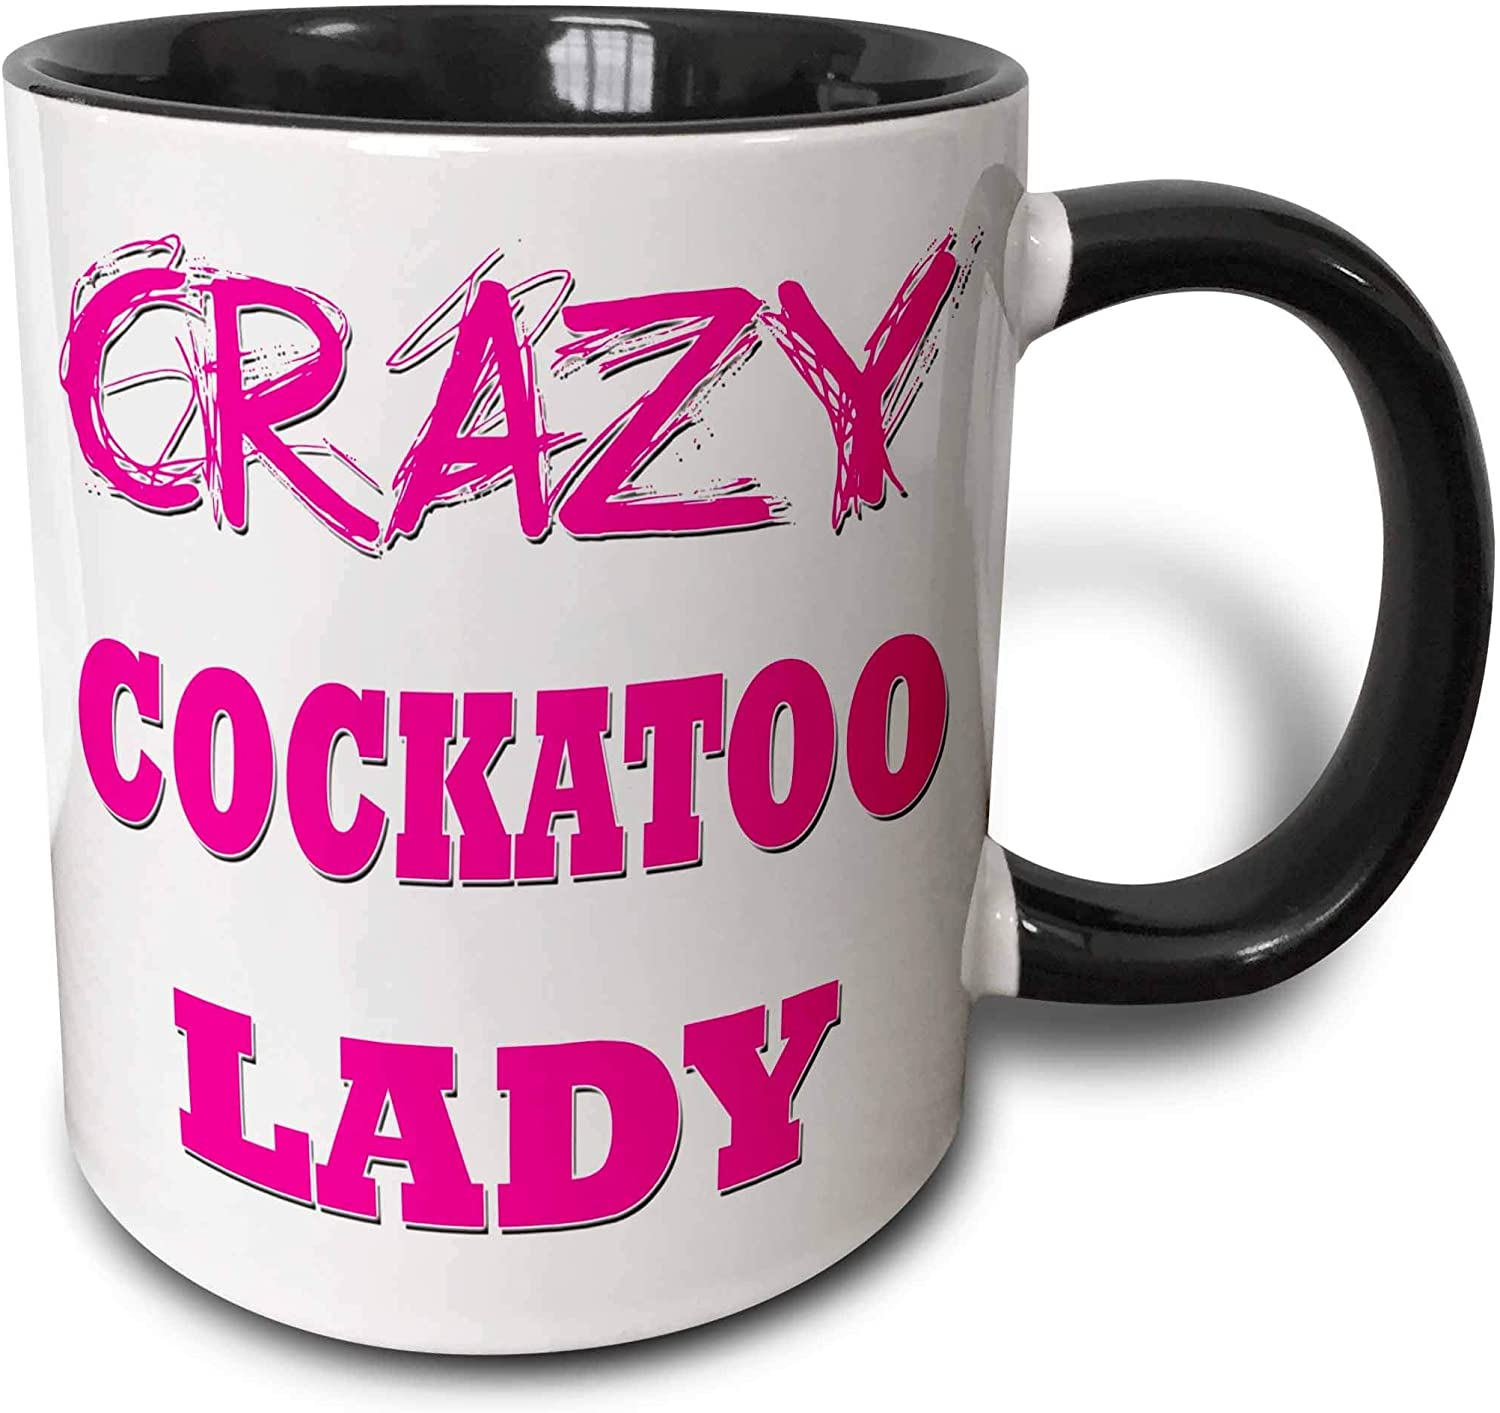 Amazon Com Novelty Ceramic Mug 11 Oz Funny Coffee Mug Unique Gift Crazy Cockatoo Lady Two Tone Mug Black Coffee Cup With Colored Rim And Handle For Men Women Kitchen Dining